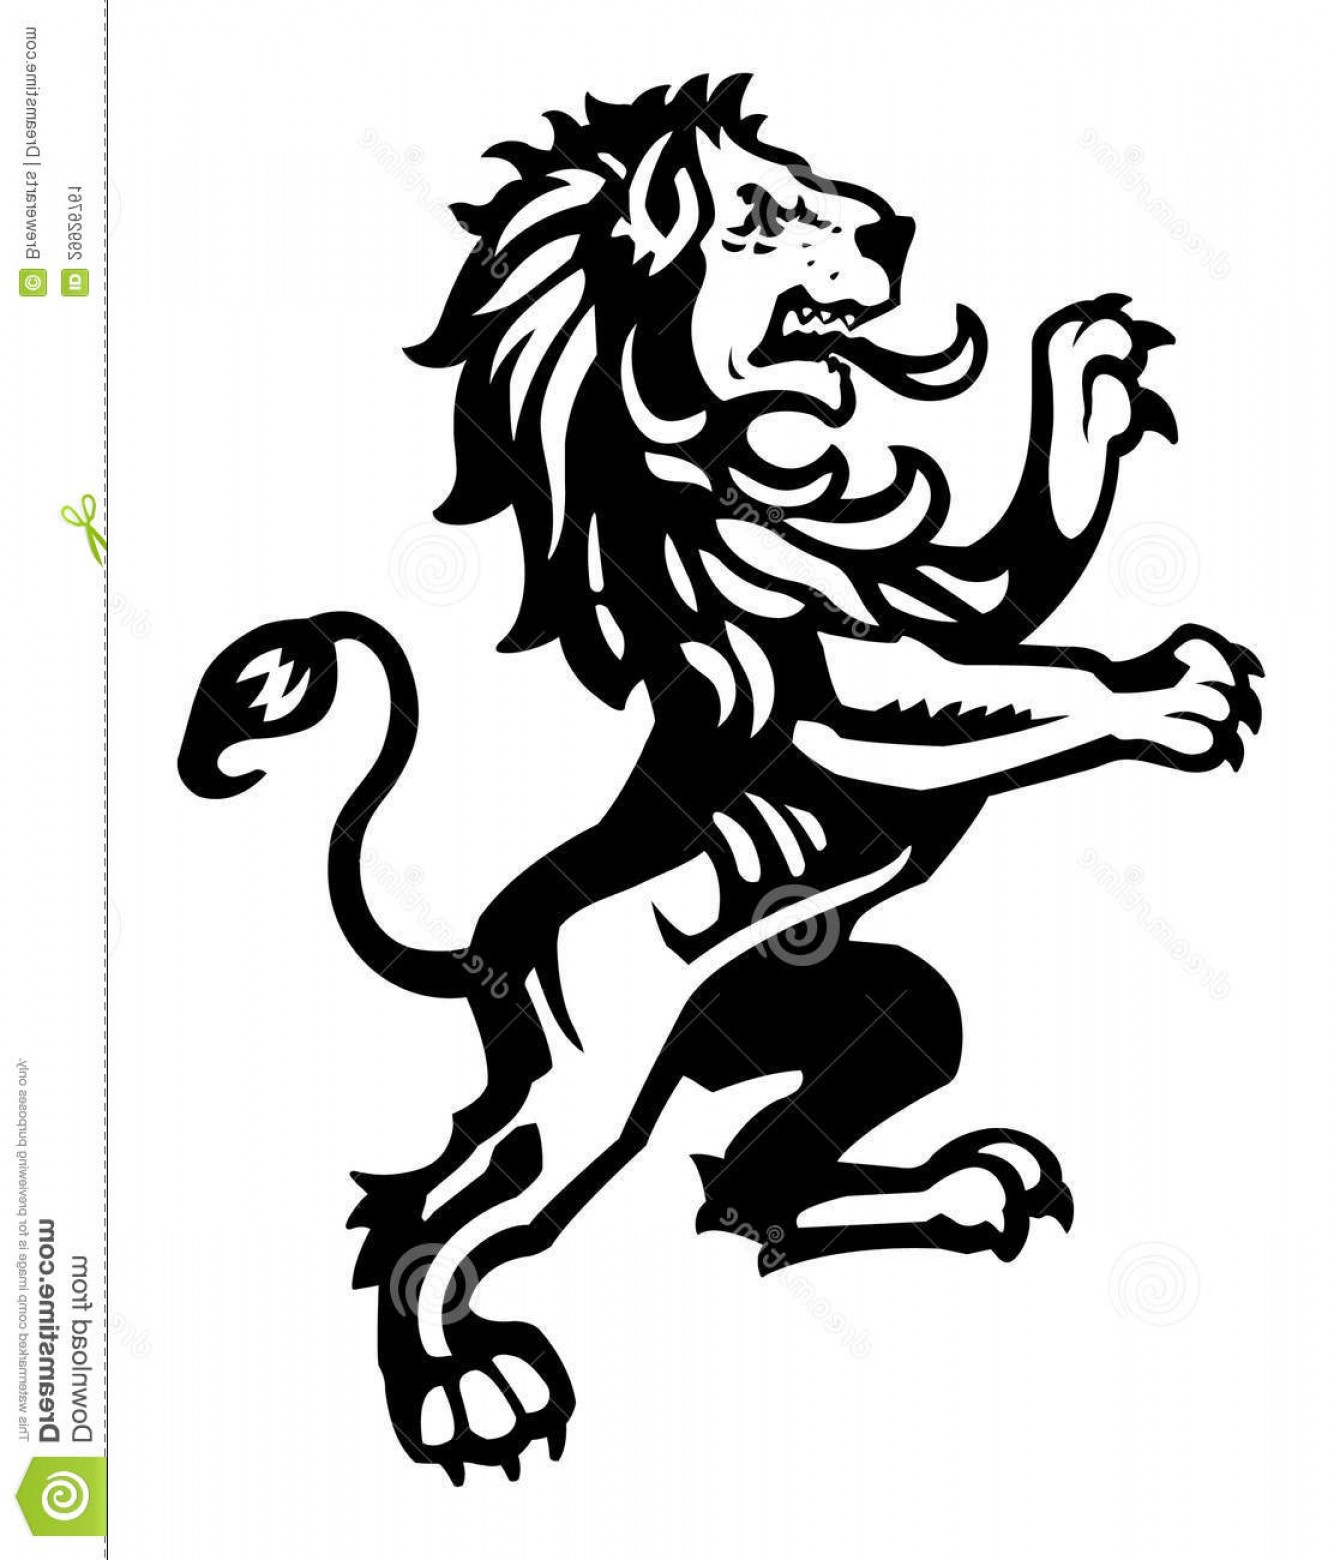 Scotland Heraldic Vector Graphic: Stock Image Heraldic Rampant Lion Illustration Excellent Medieval Crest Imagery Image